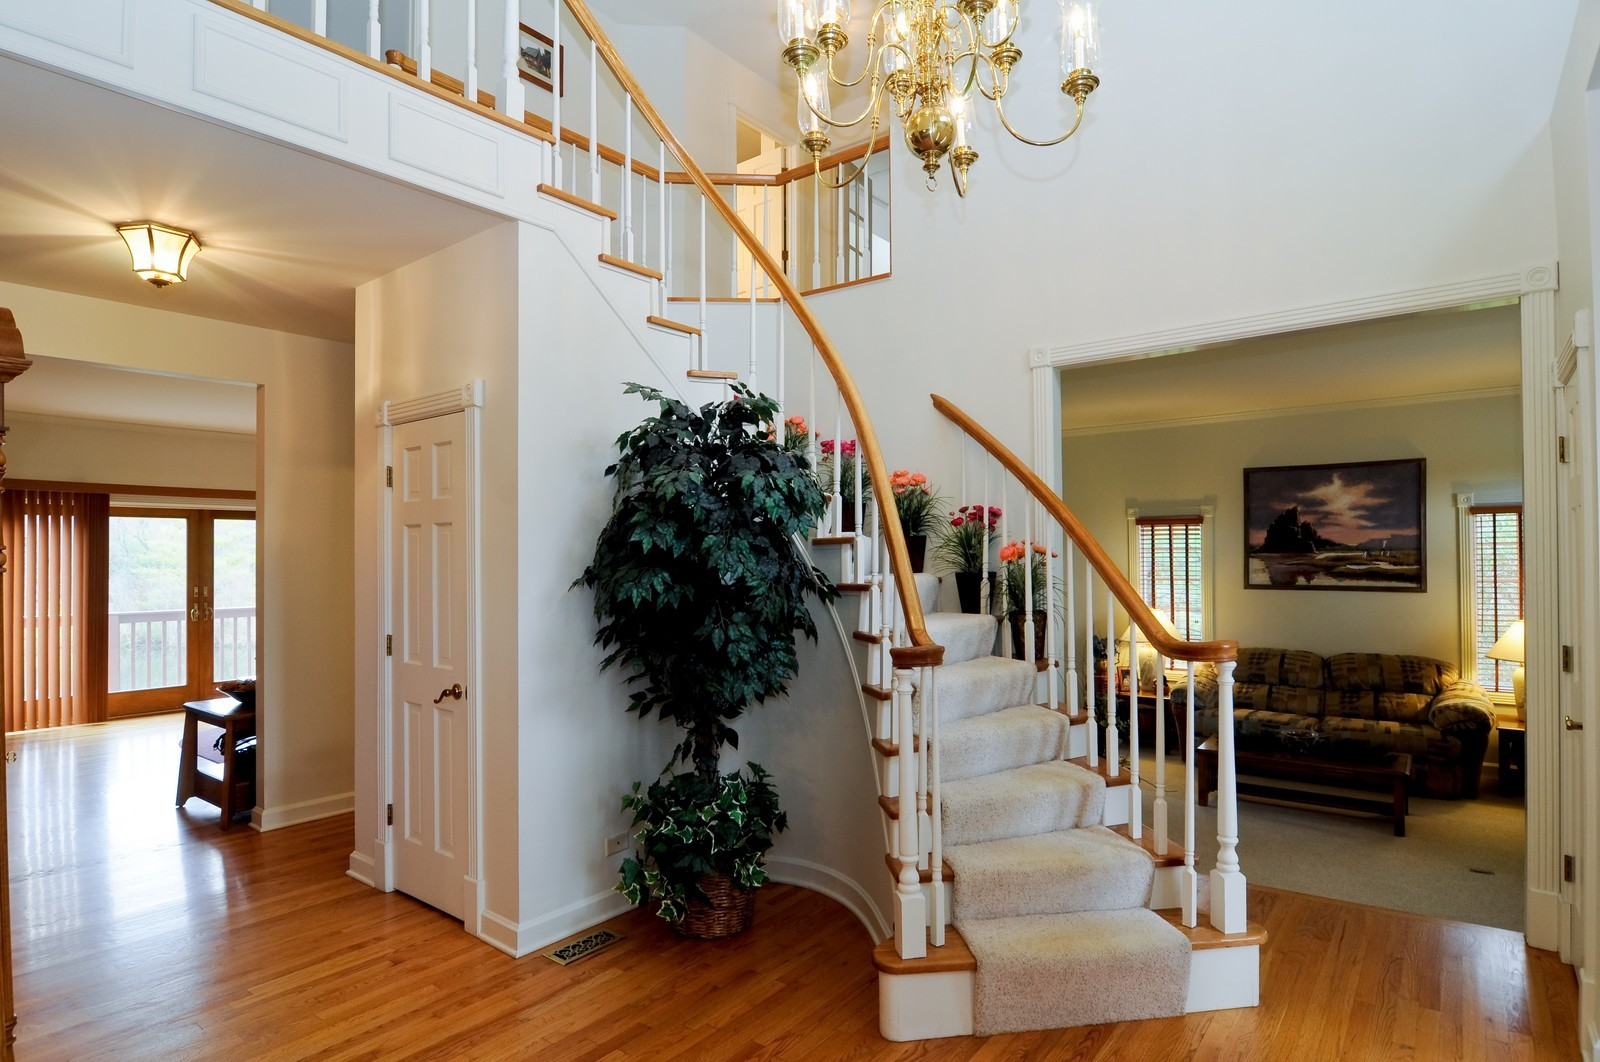 Real Estate Photography - 22988 W Thornhill Ct, Deer Park, IL, 60010 - Foyer